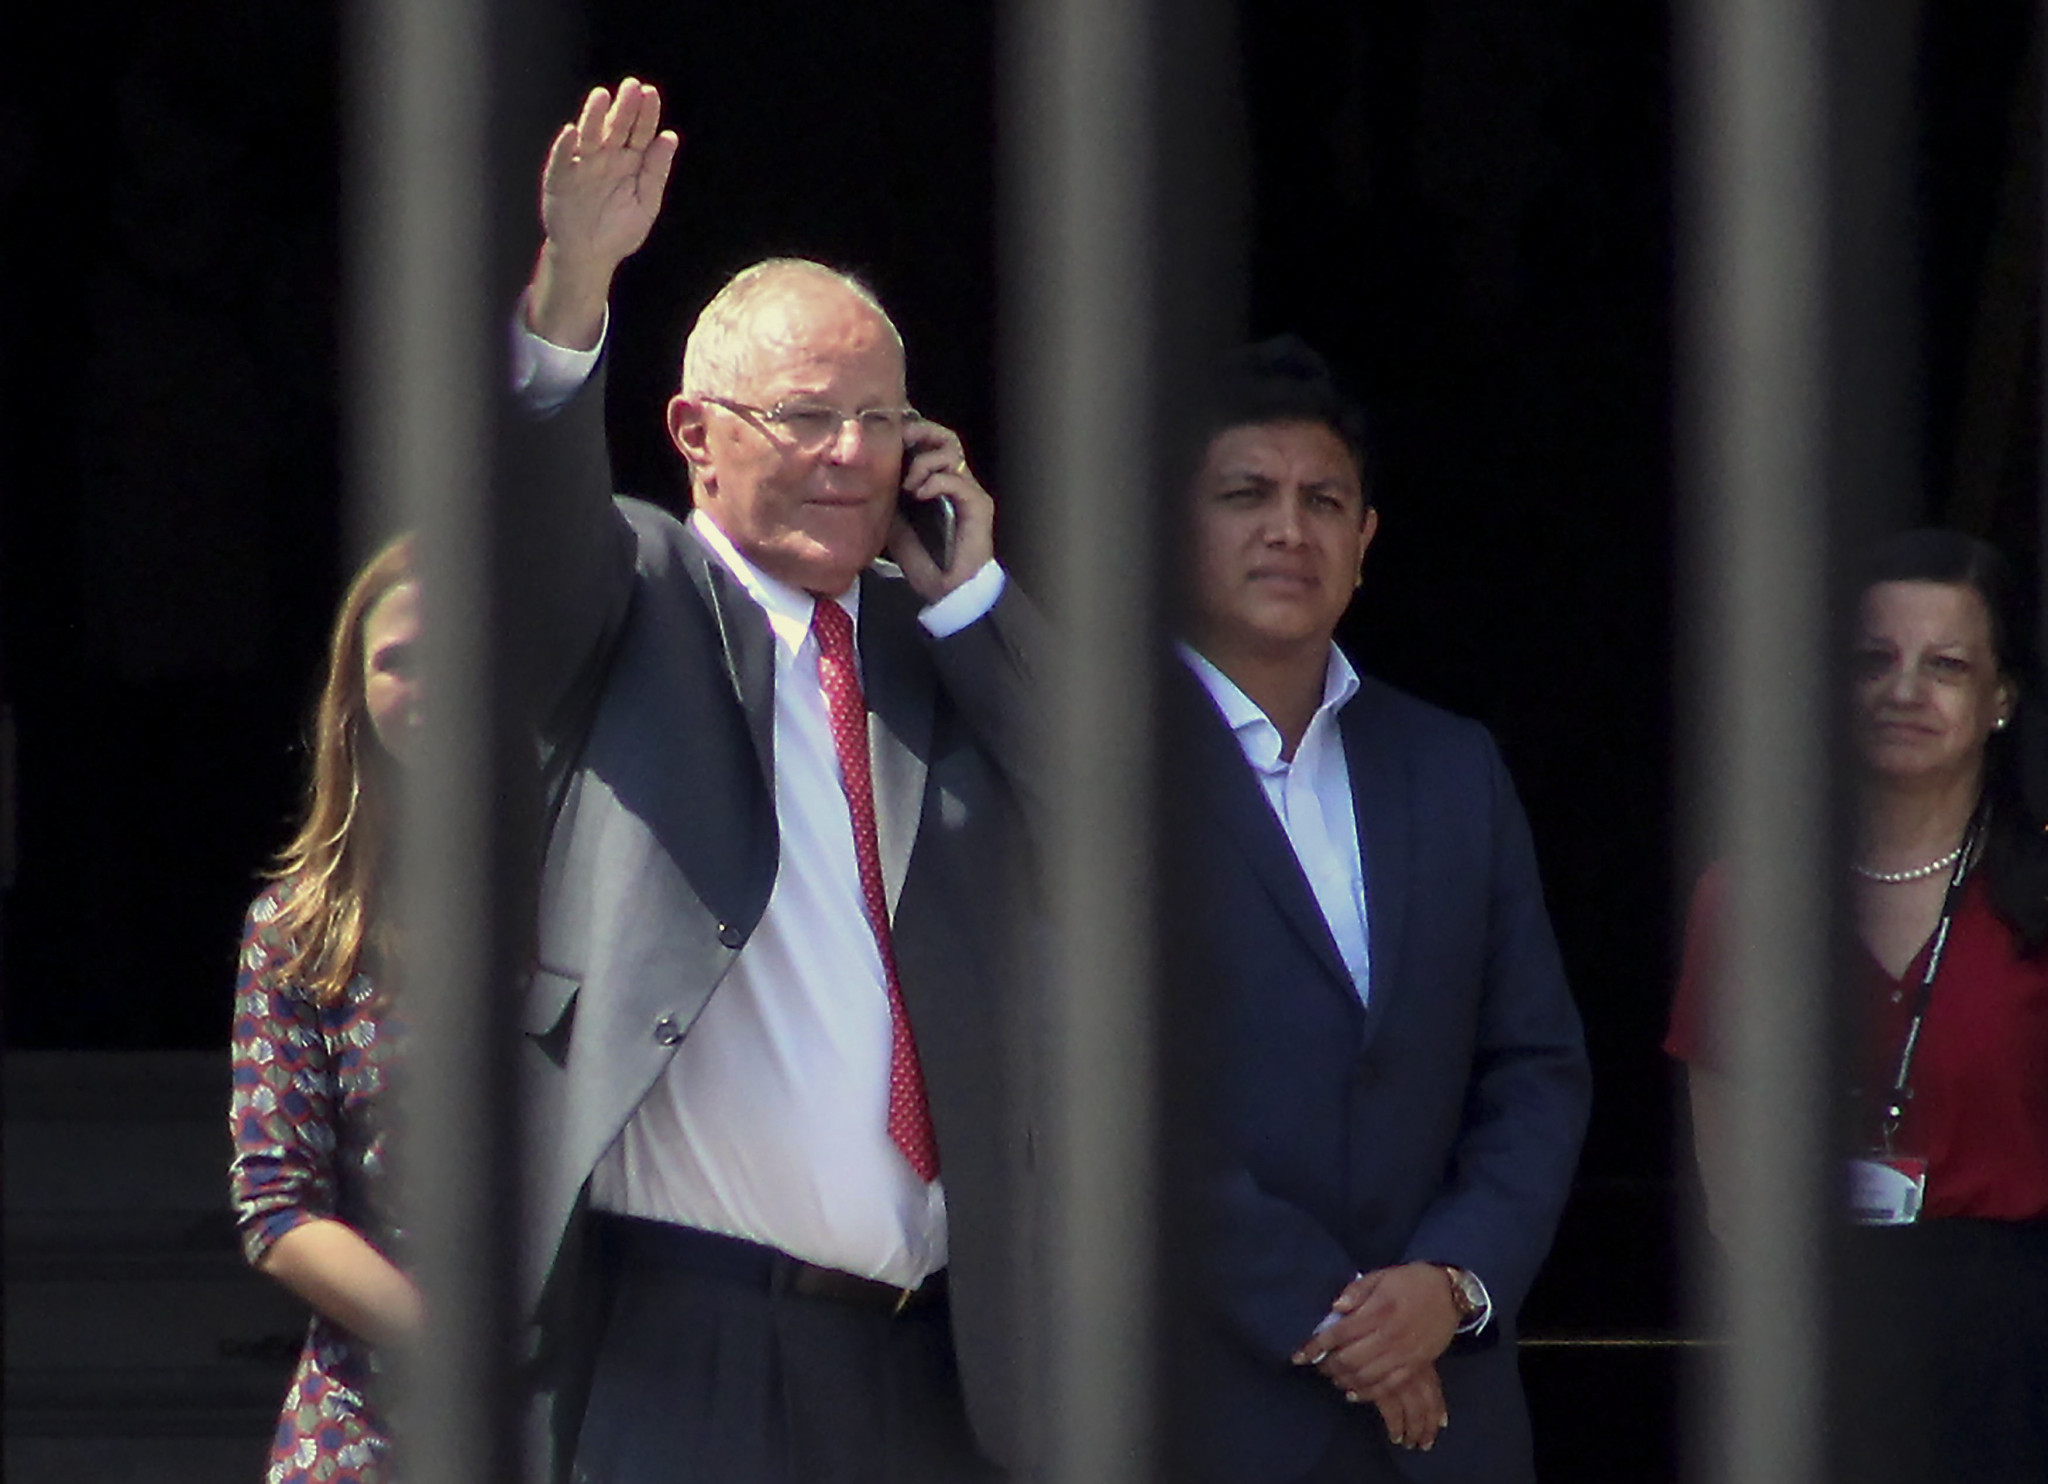 Peru's President, left the post due to allegations of corruption